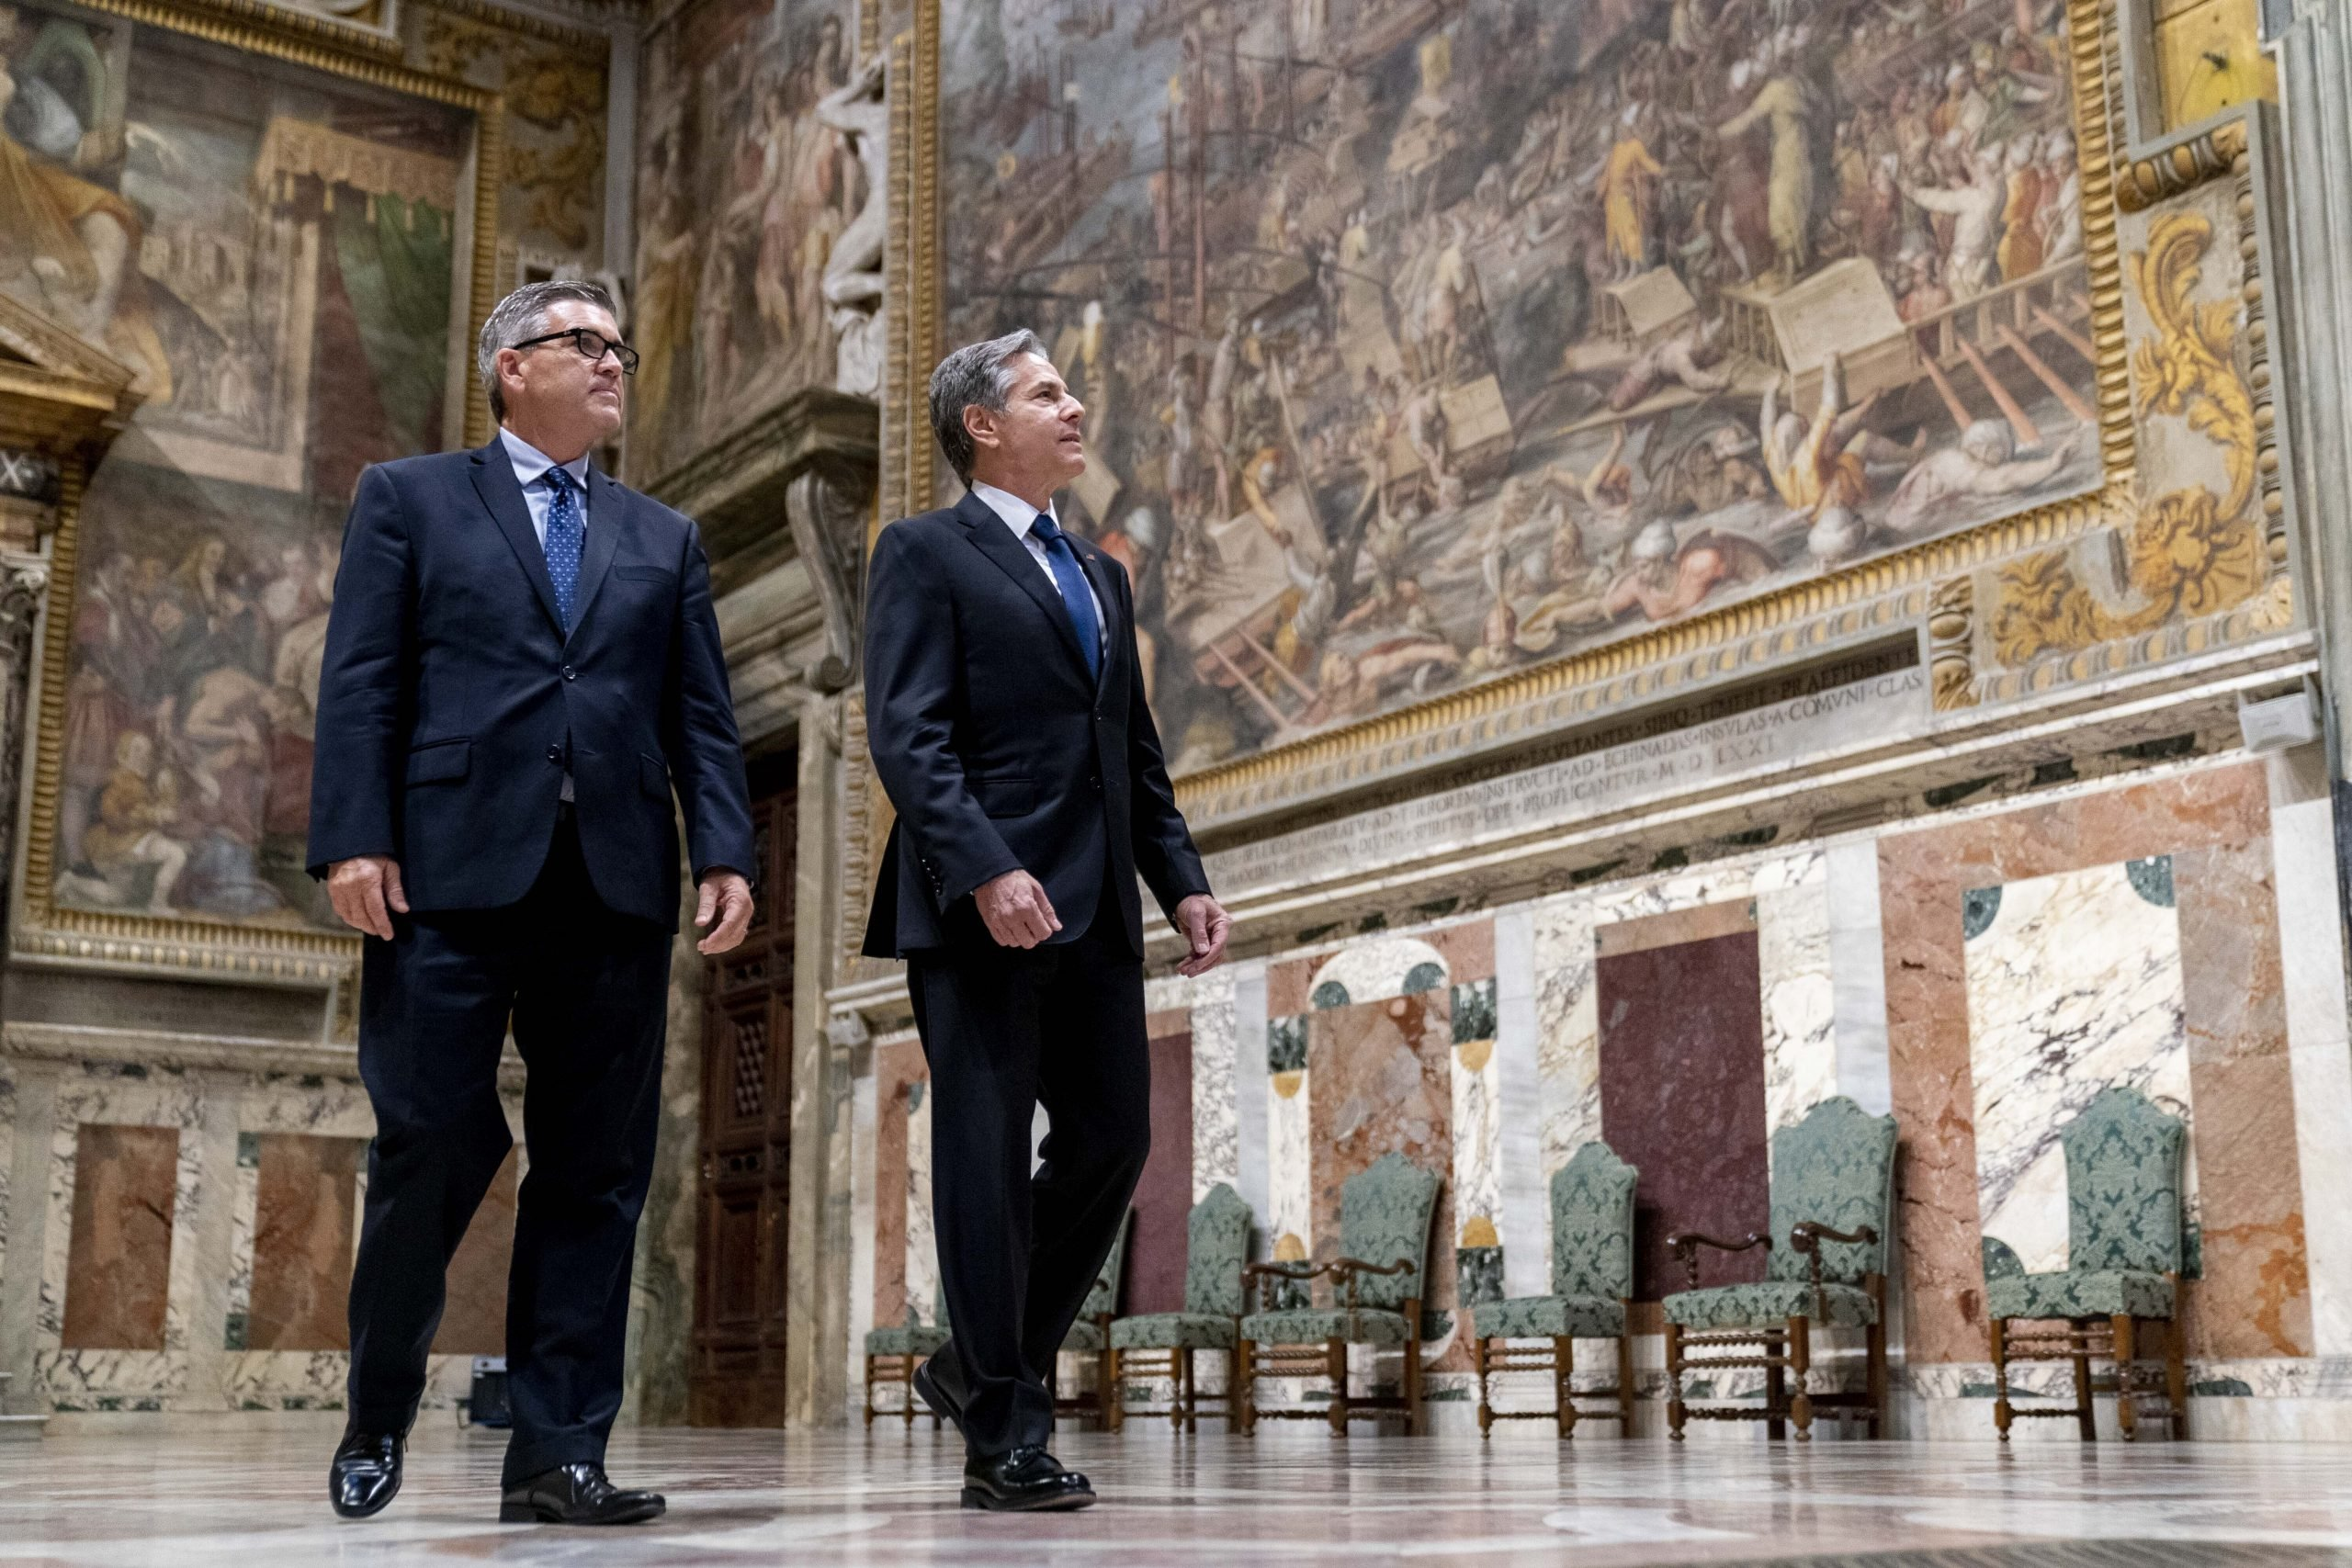 Secretary of State Antony Blinken, right, accompanied by Chargé d'Affaires of the U.S. Embassy to the Holy See Patrick Connell, left, gets a tour of the Sala Regia at the Vatican in Rome, Monday, June 28, 2021. Blinken is on a weeklong trip in Europe traveling to Germany, France and Italy. (AP Photo/Andrew Harnik, Pool)